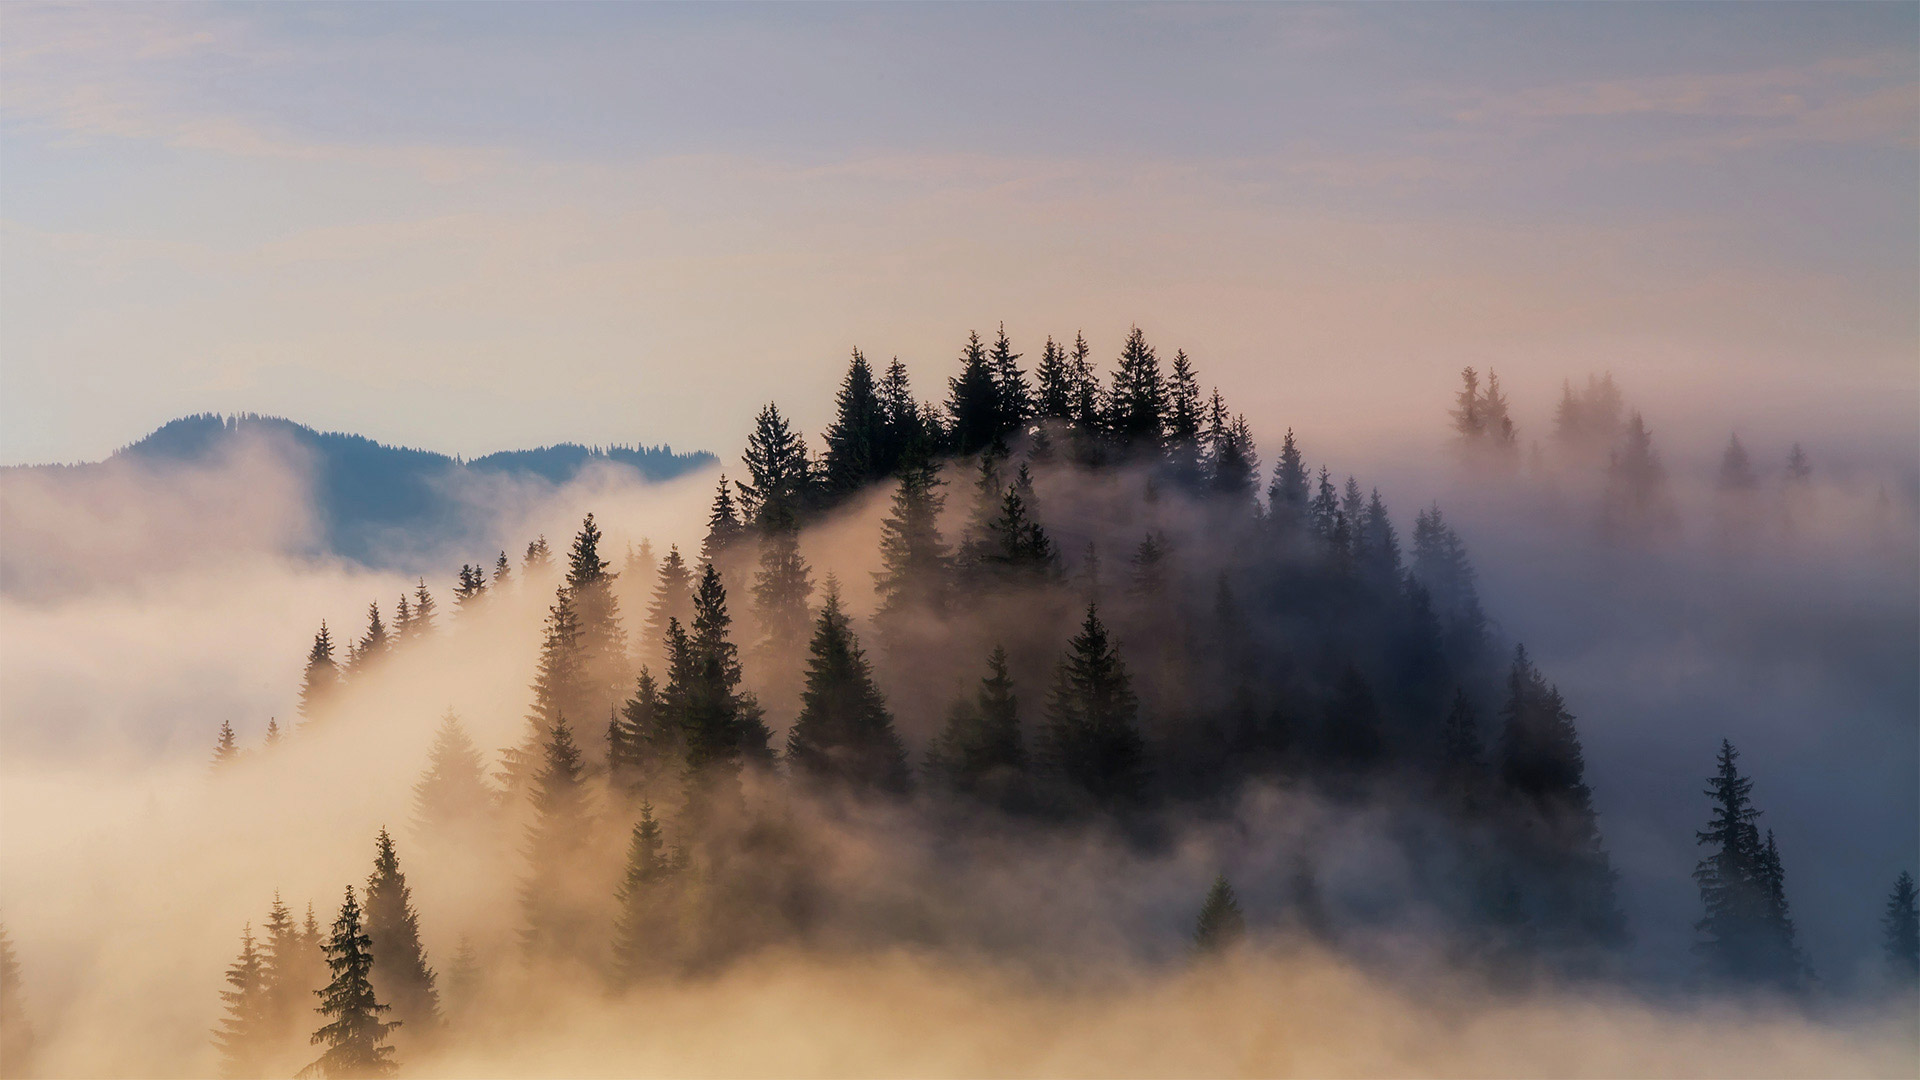 Fog shrouds the Bavarian Alps in Germany (© Anton Petrus/Getty Images)